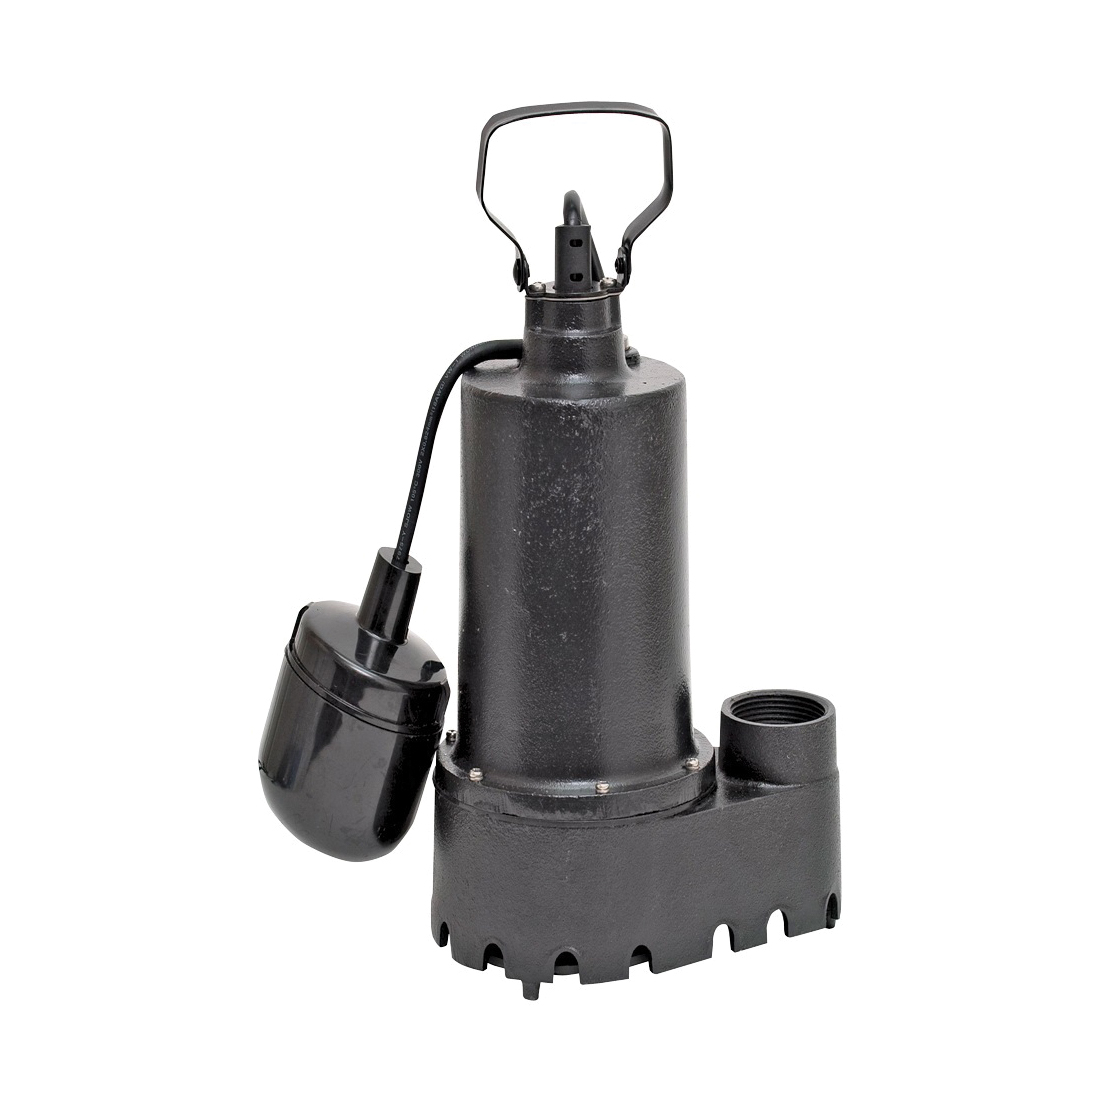 Picture of SUPERIOR PUMP 92511 Sump Pump, 7.6 A, 120 V, 0.5 hp, 1-1/2 in Outlet, 25 ft Max Head, 70 gpm, Iron